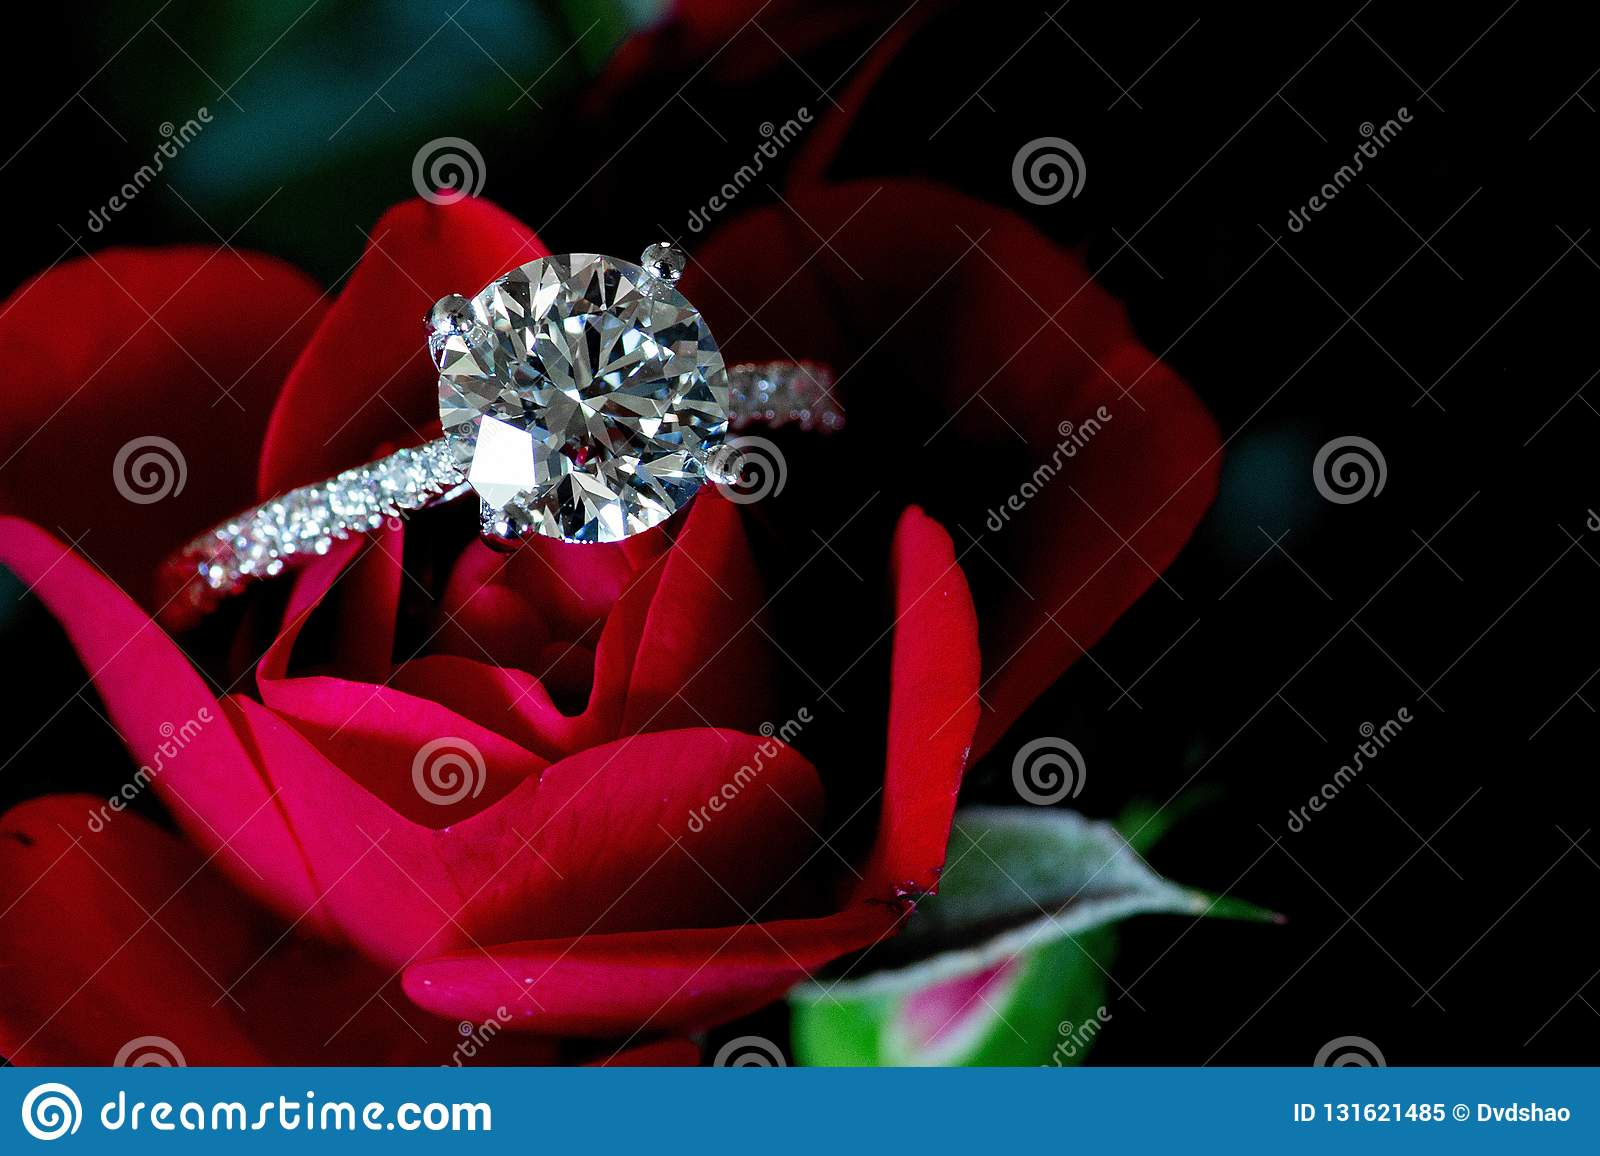 Platino Diamond Ring On Red Rose